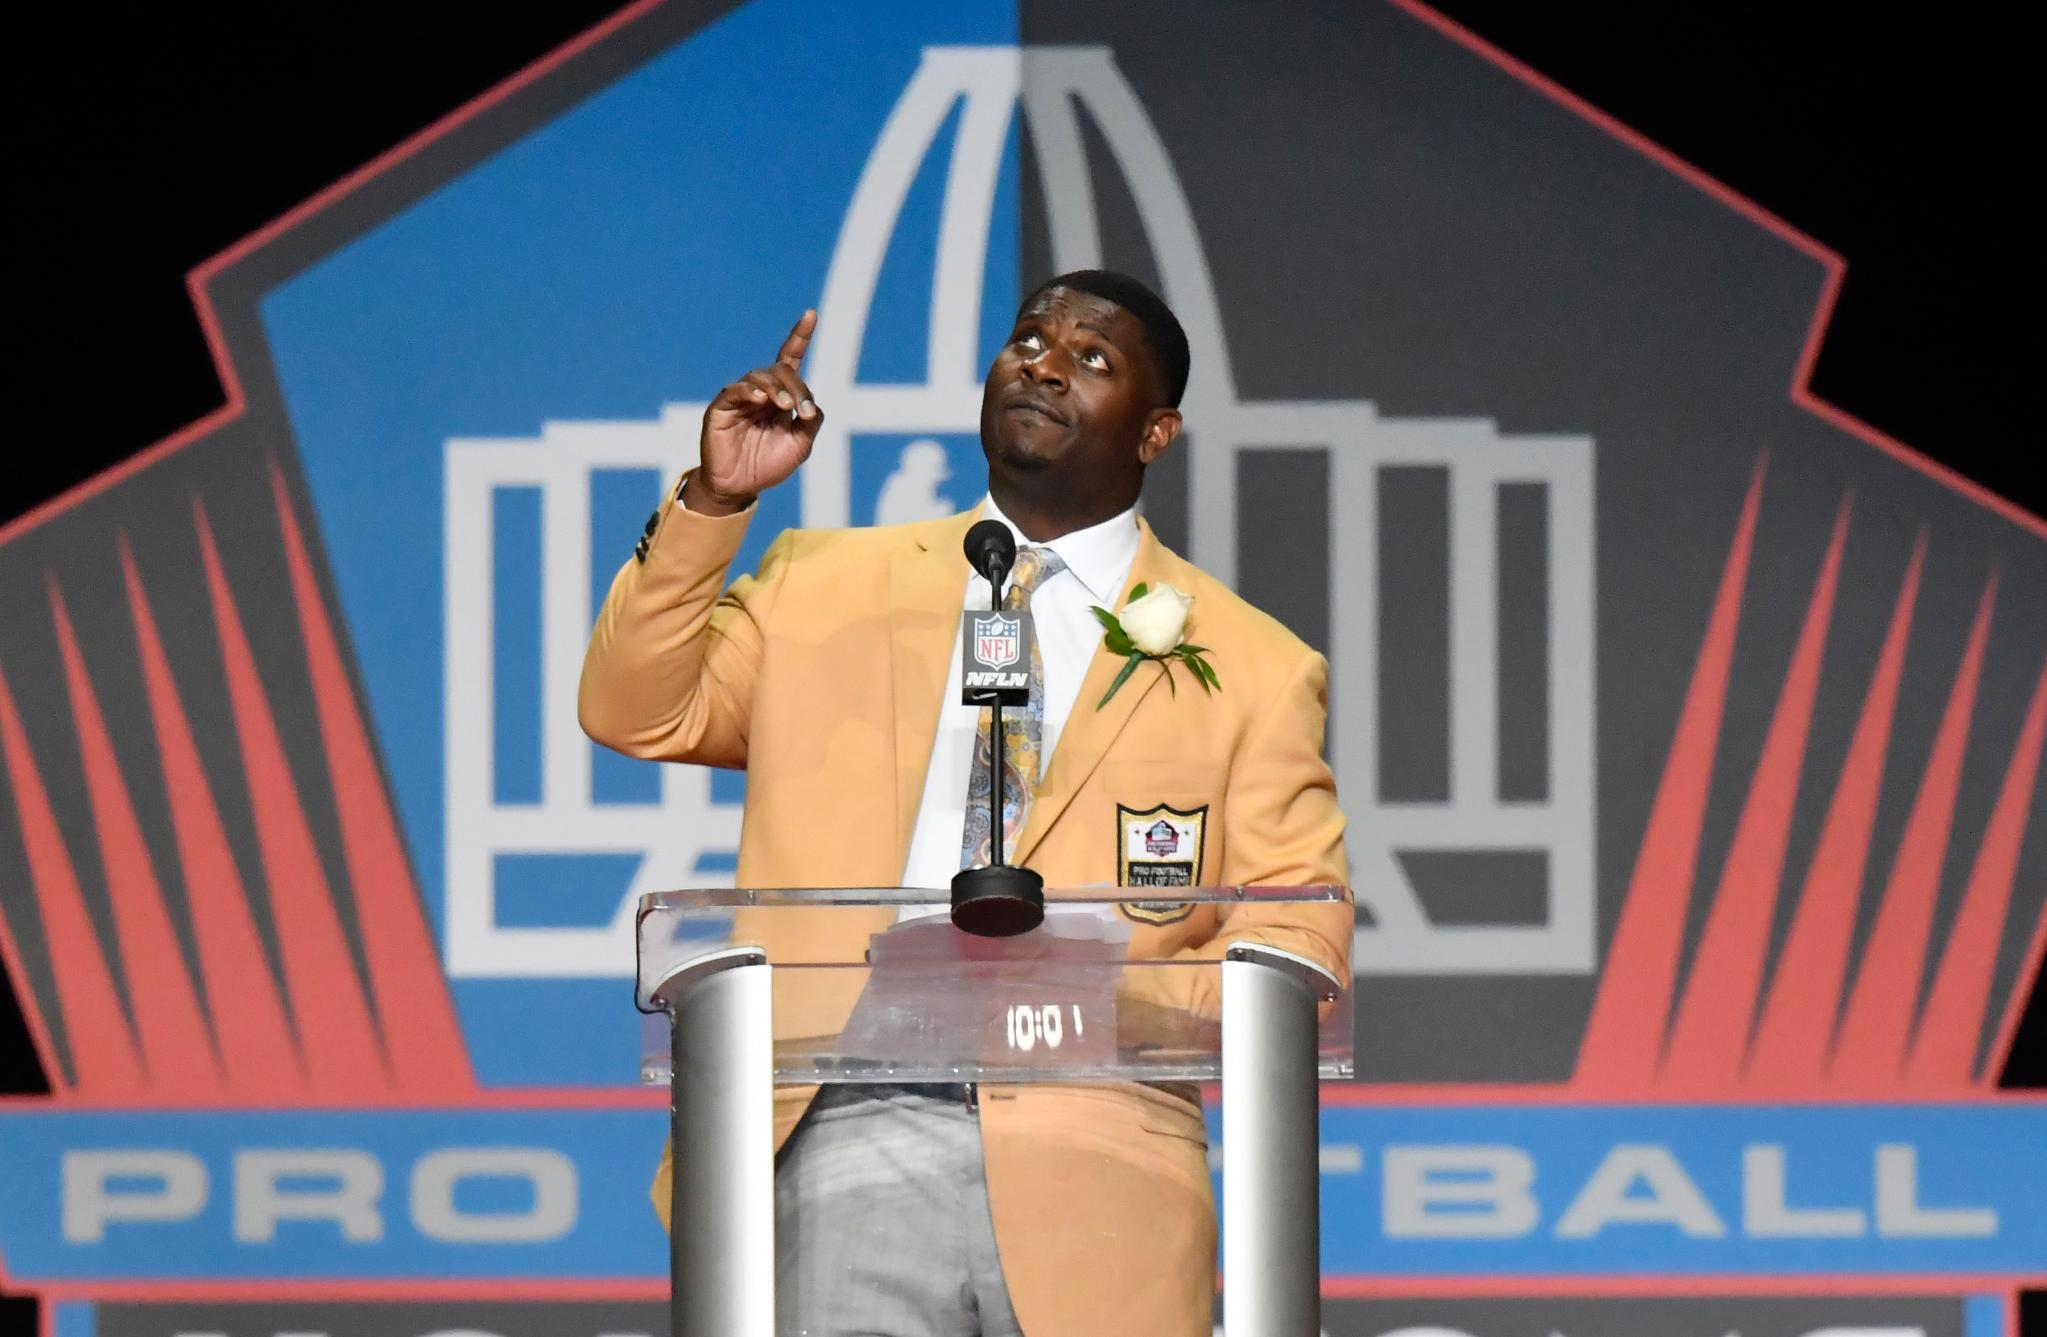 LaDainian Tomlinson paid tribute to his predecessors during his Hall of Fame speech. https://t.co/ZOJLAlSmGj https://t.co/XjoU4VJUma